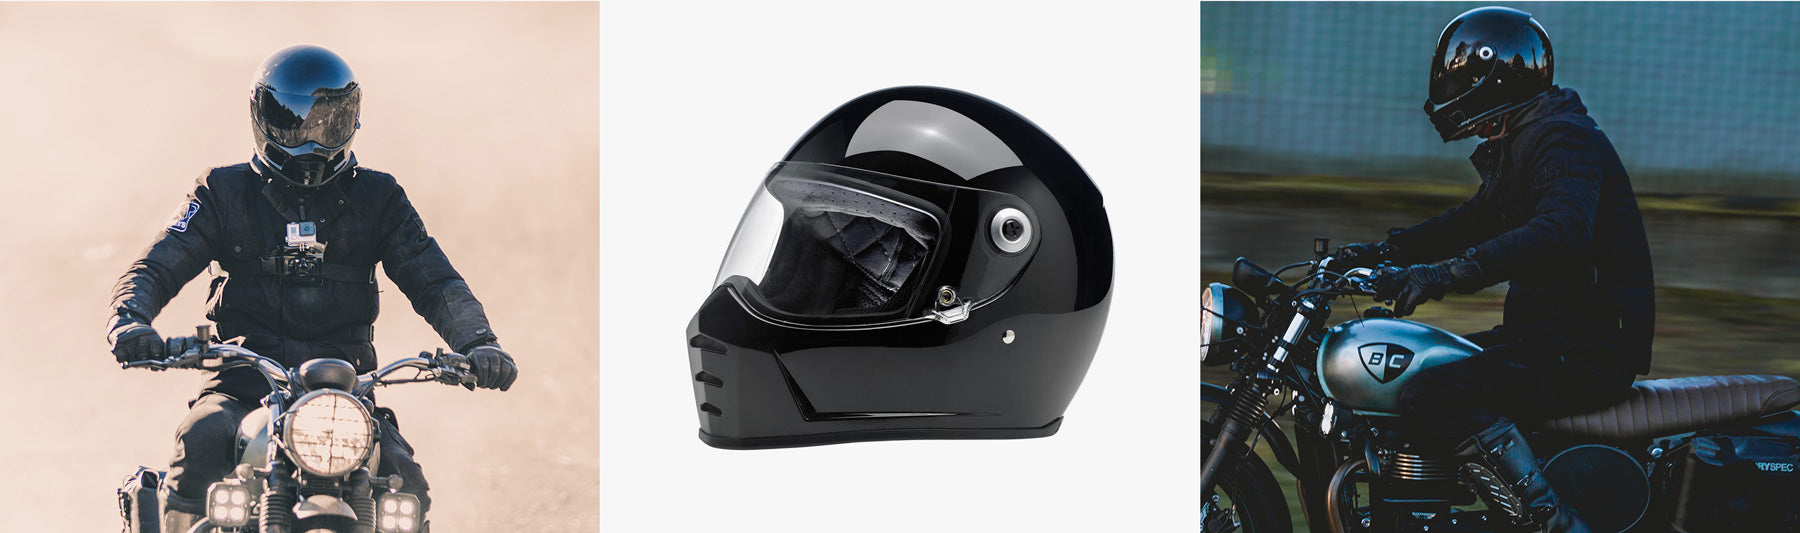 Biltwell Lane Splitter Helmet from British Customs